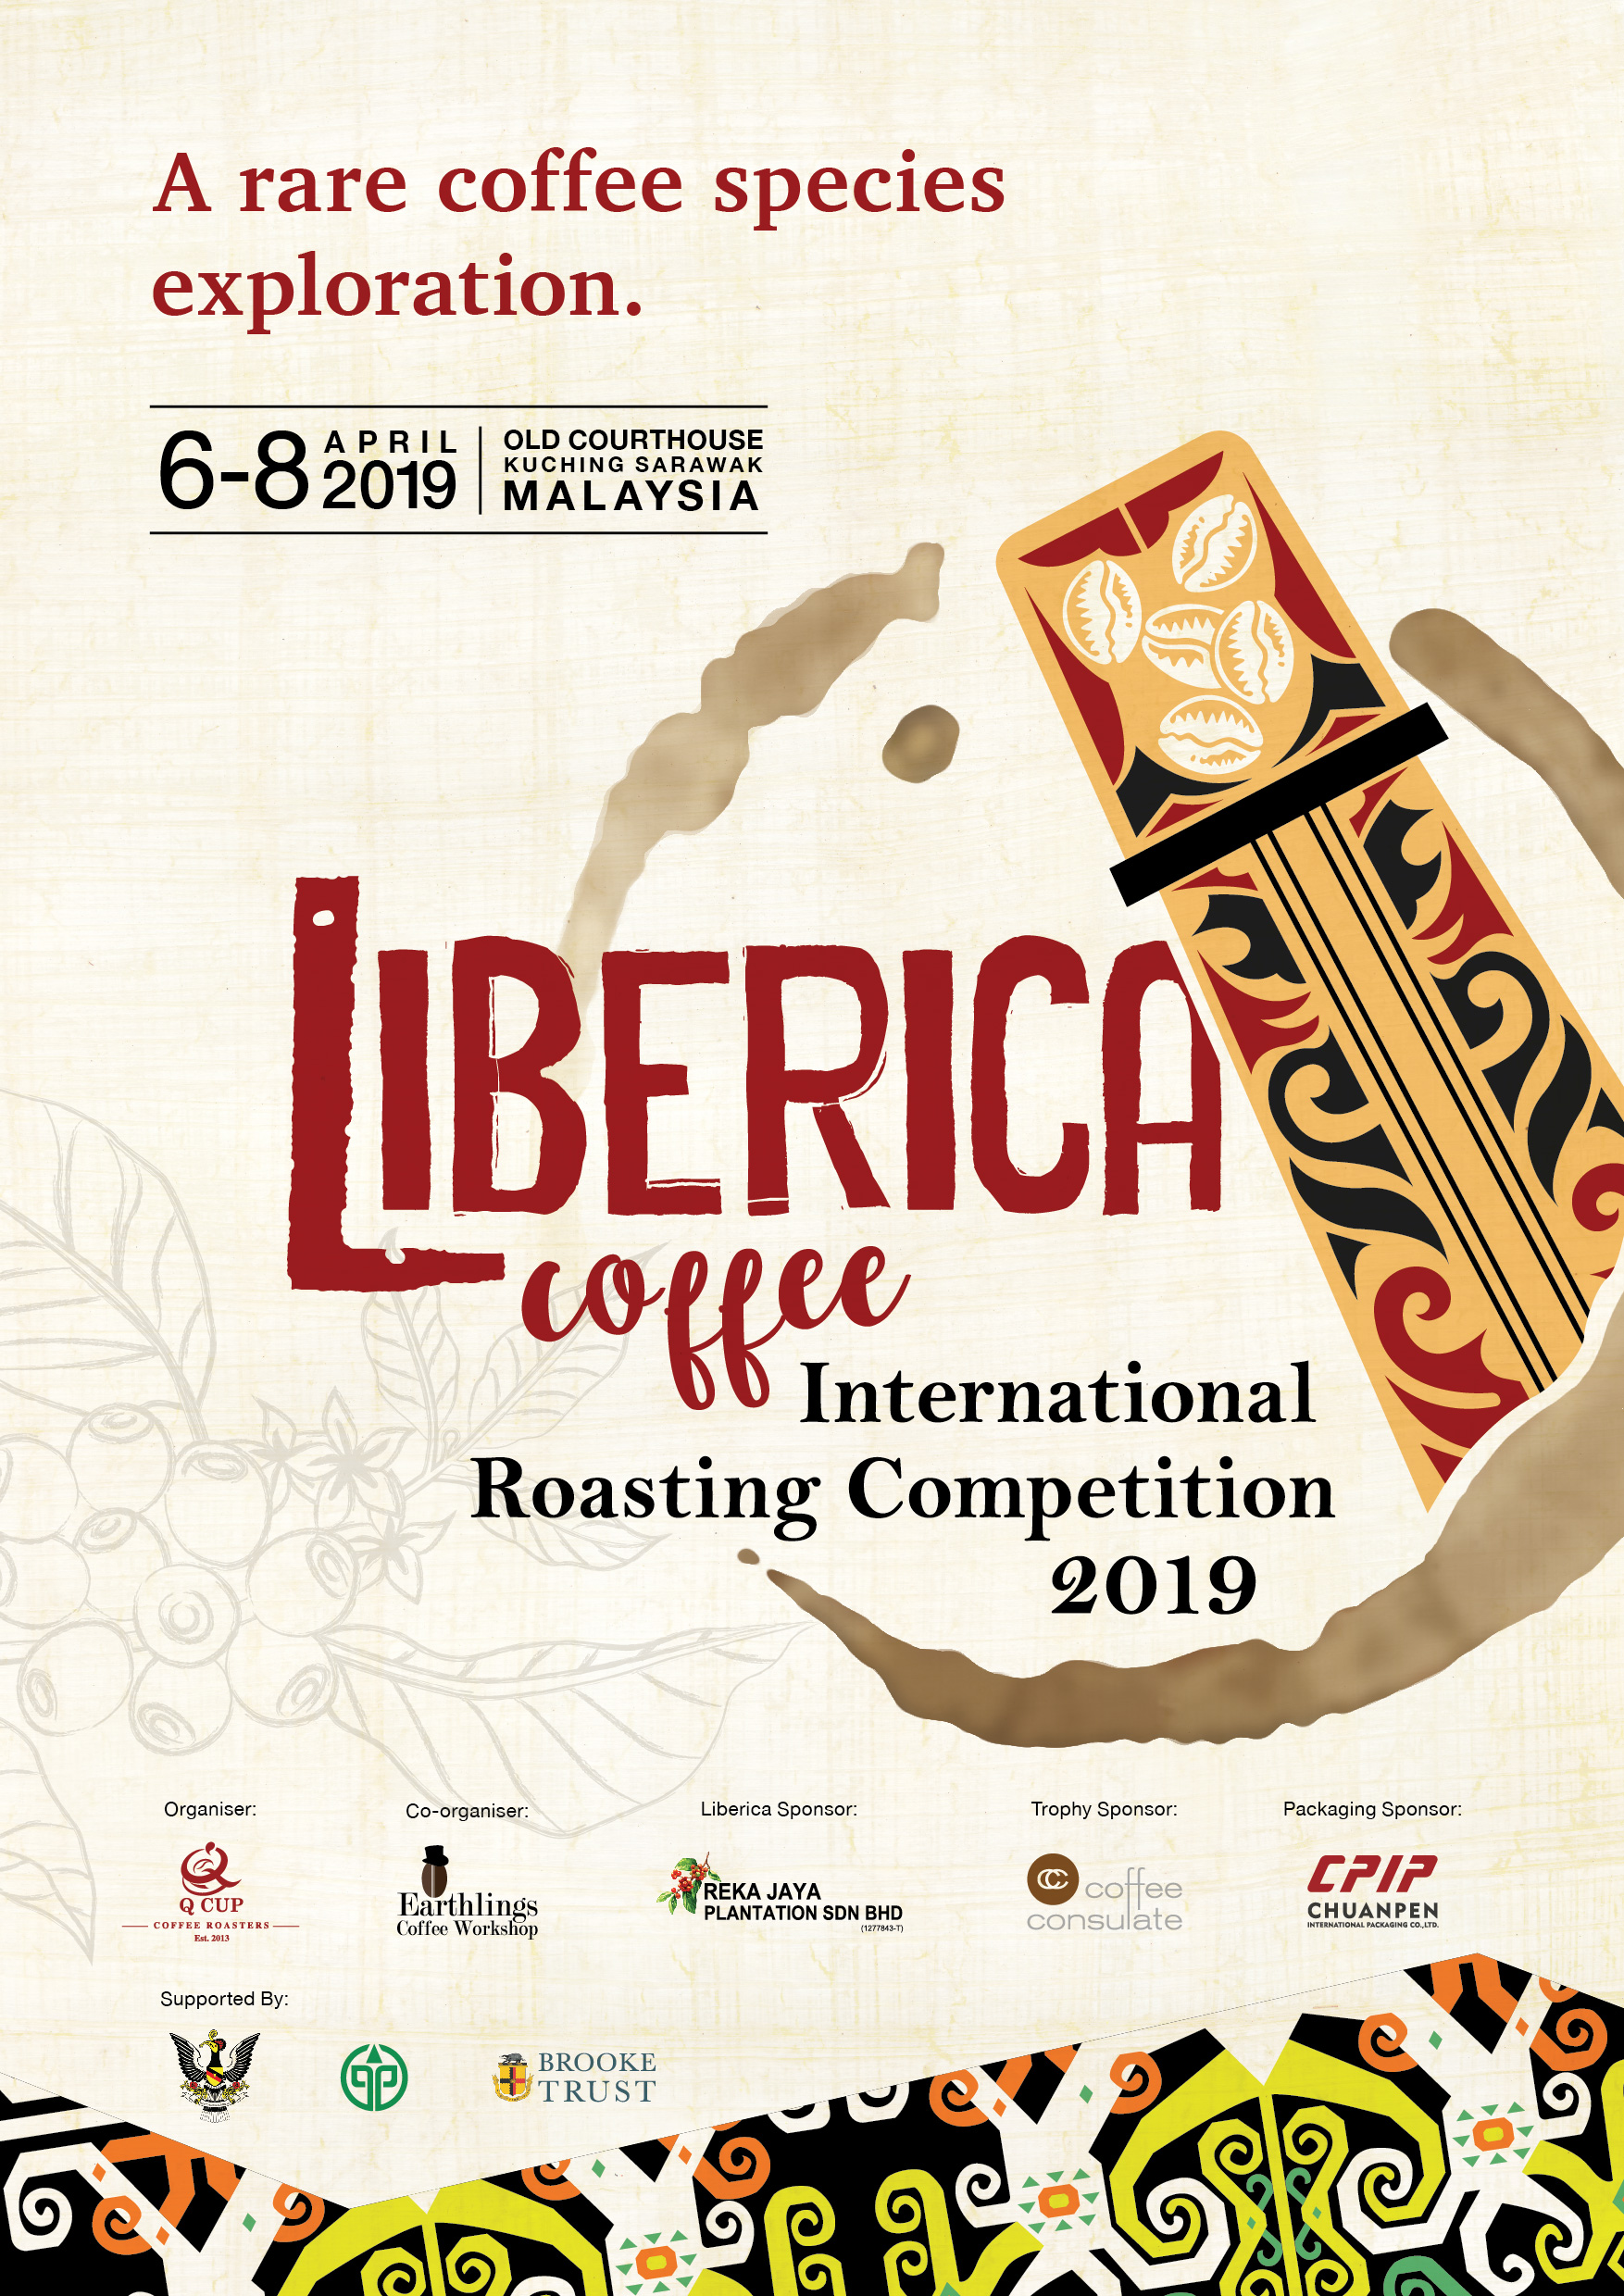 First Liberica Roasting Competition - A Liberica coffee roasting competition – the first of its kind in the industry for this rare coffee bean – will also form part of the events of the weekend. Renowned global coffee roasters will be invited to participate in the competition to test their skills in extracting the ultra-sweetness and complexity of the Liberica coffee bean. More than that they are invited to create their own perception of the Liberica and its taste, based on their own approaches to roasting and their taste palette. Our invited judges are experienced and world-renowned, frequently involved in World Coffee Events and other competitions; for this event, they are challenged to judge this competition in a novel way.